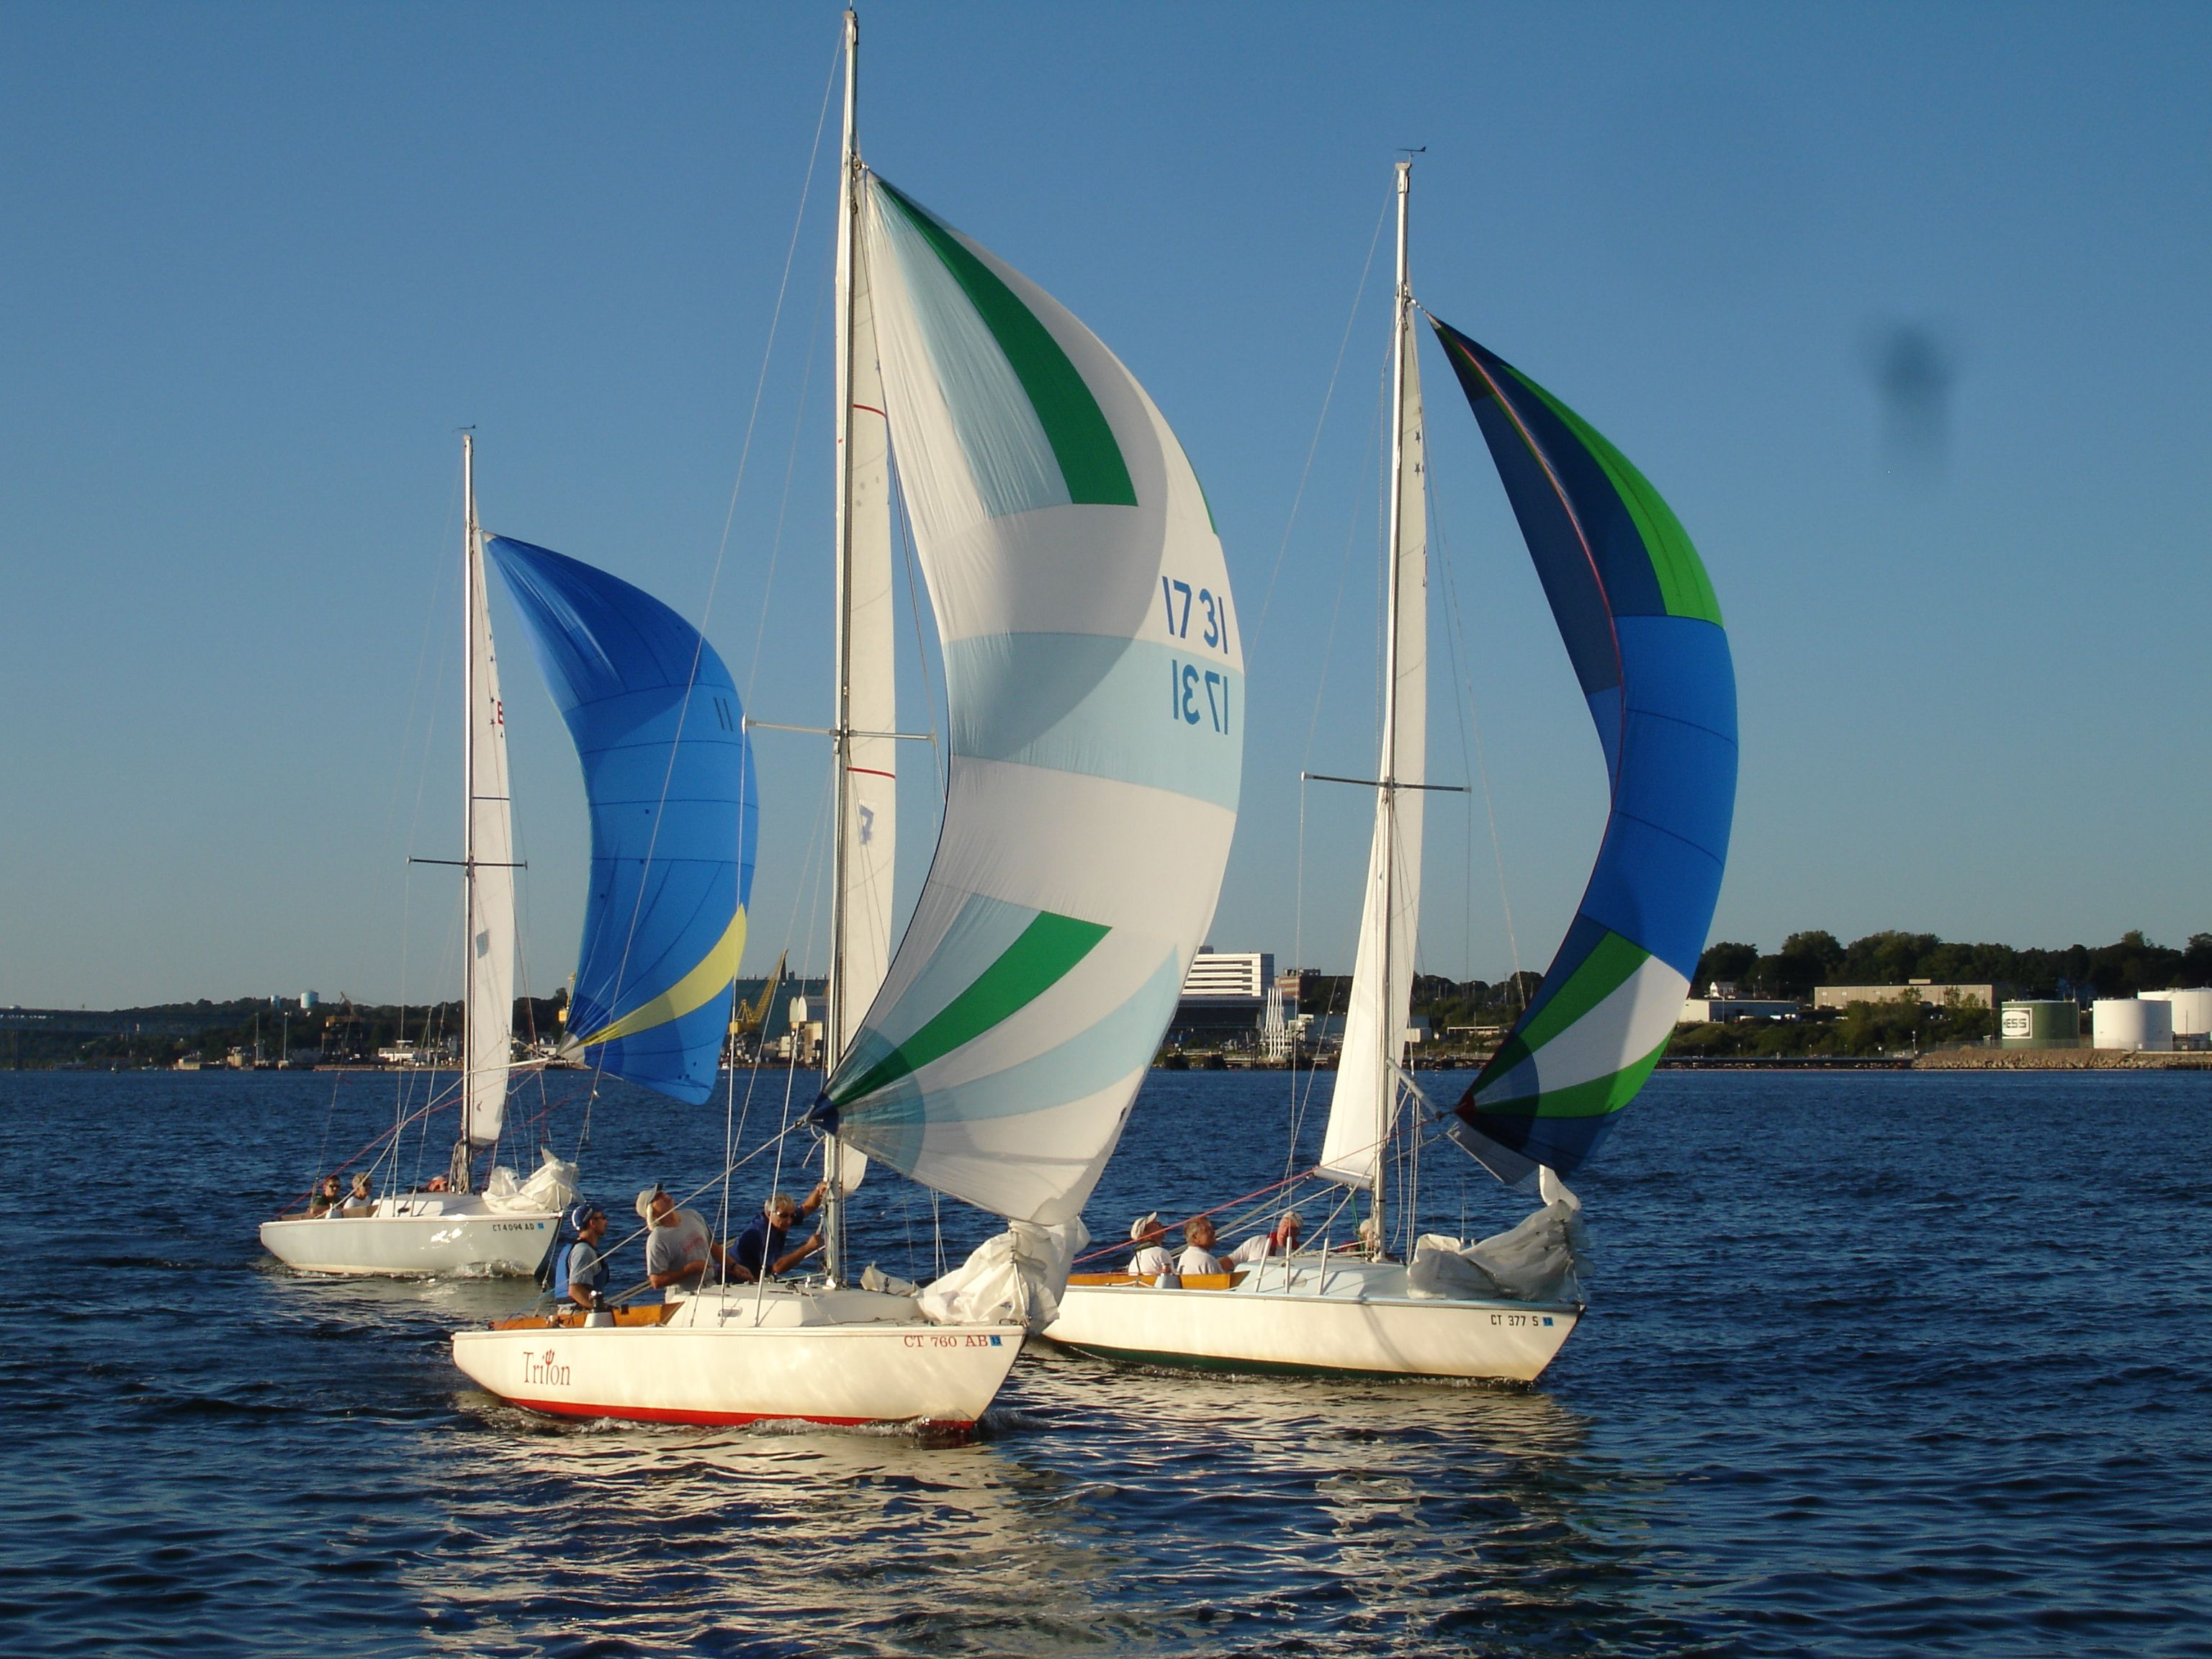 Discover Sailing at Sound Sailing Center's Commissioning Day on Sunday, May 19